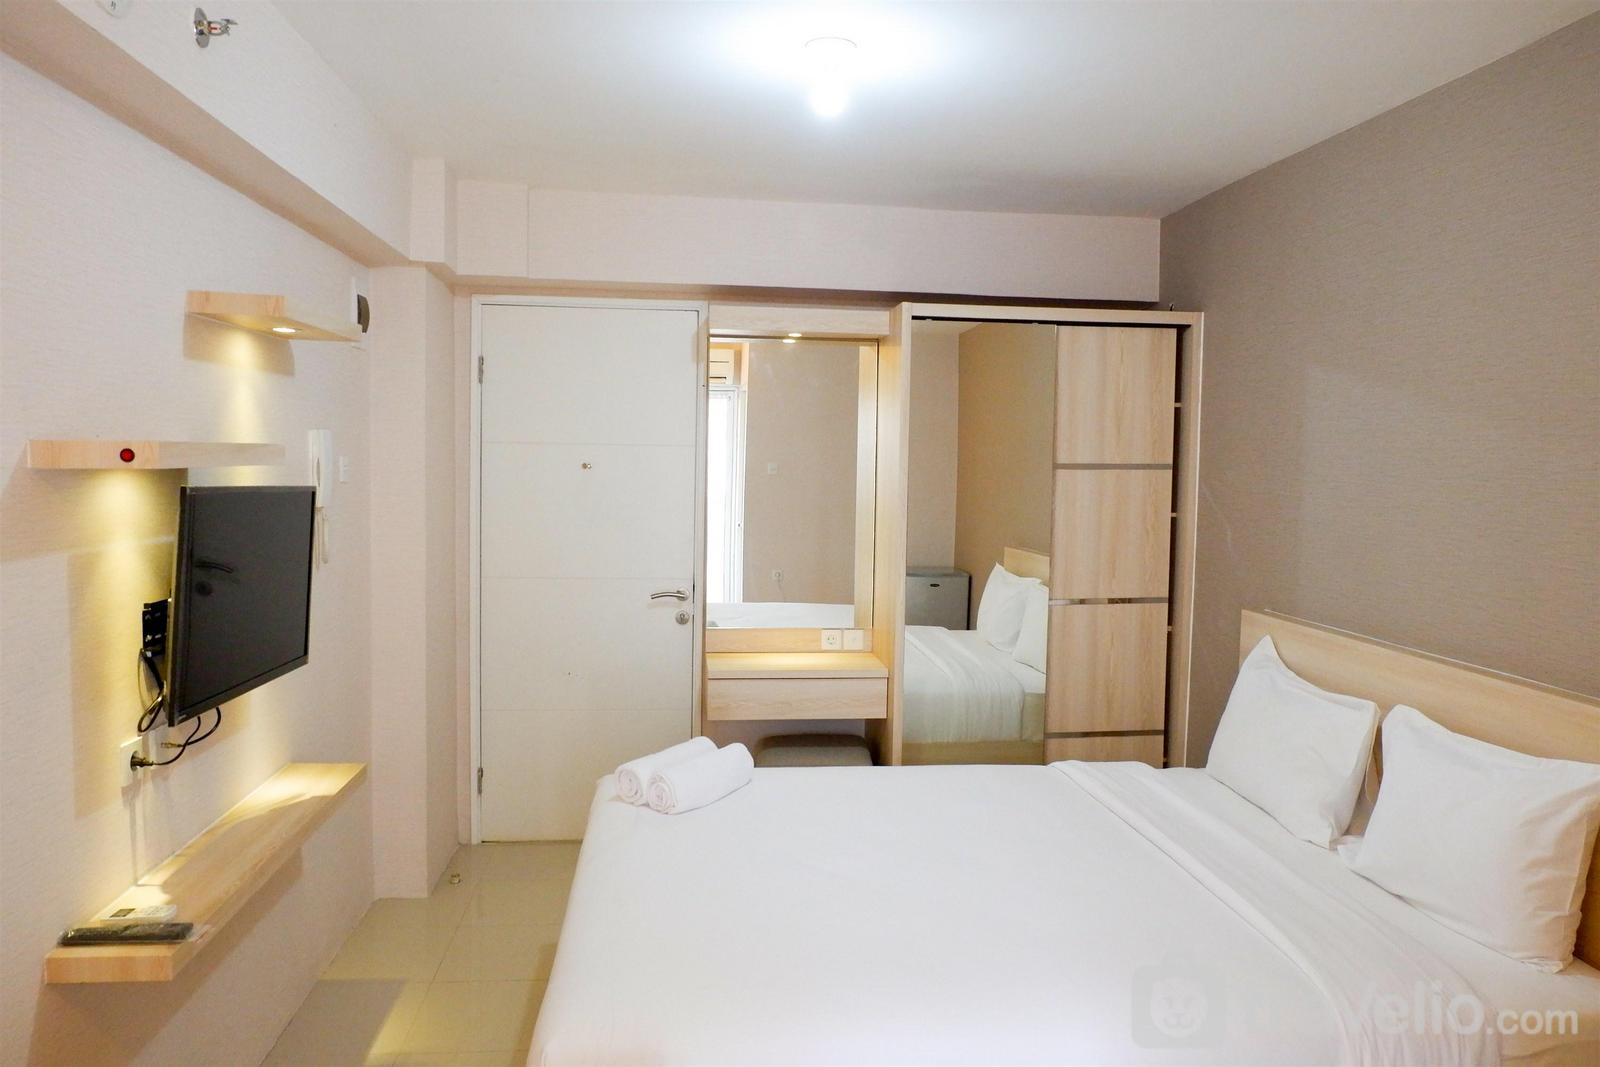 Bassura City Cipinang - Cozy Studio at Bassura Apartment near to Bassura Mall By Travelio